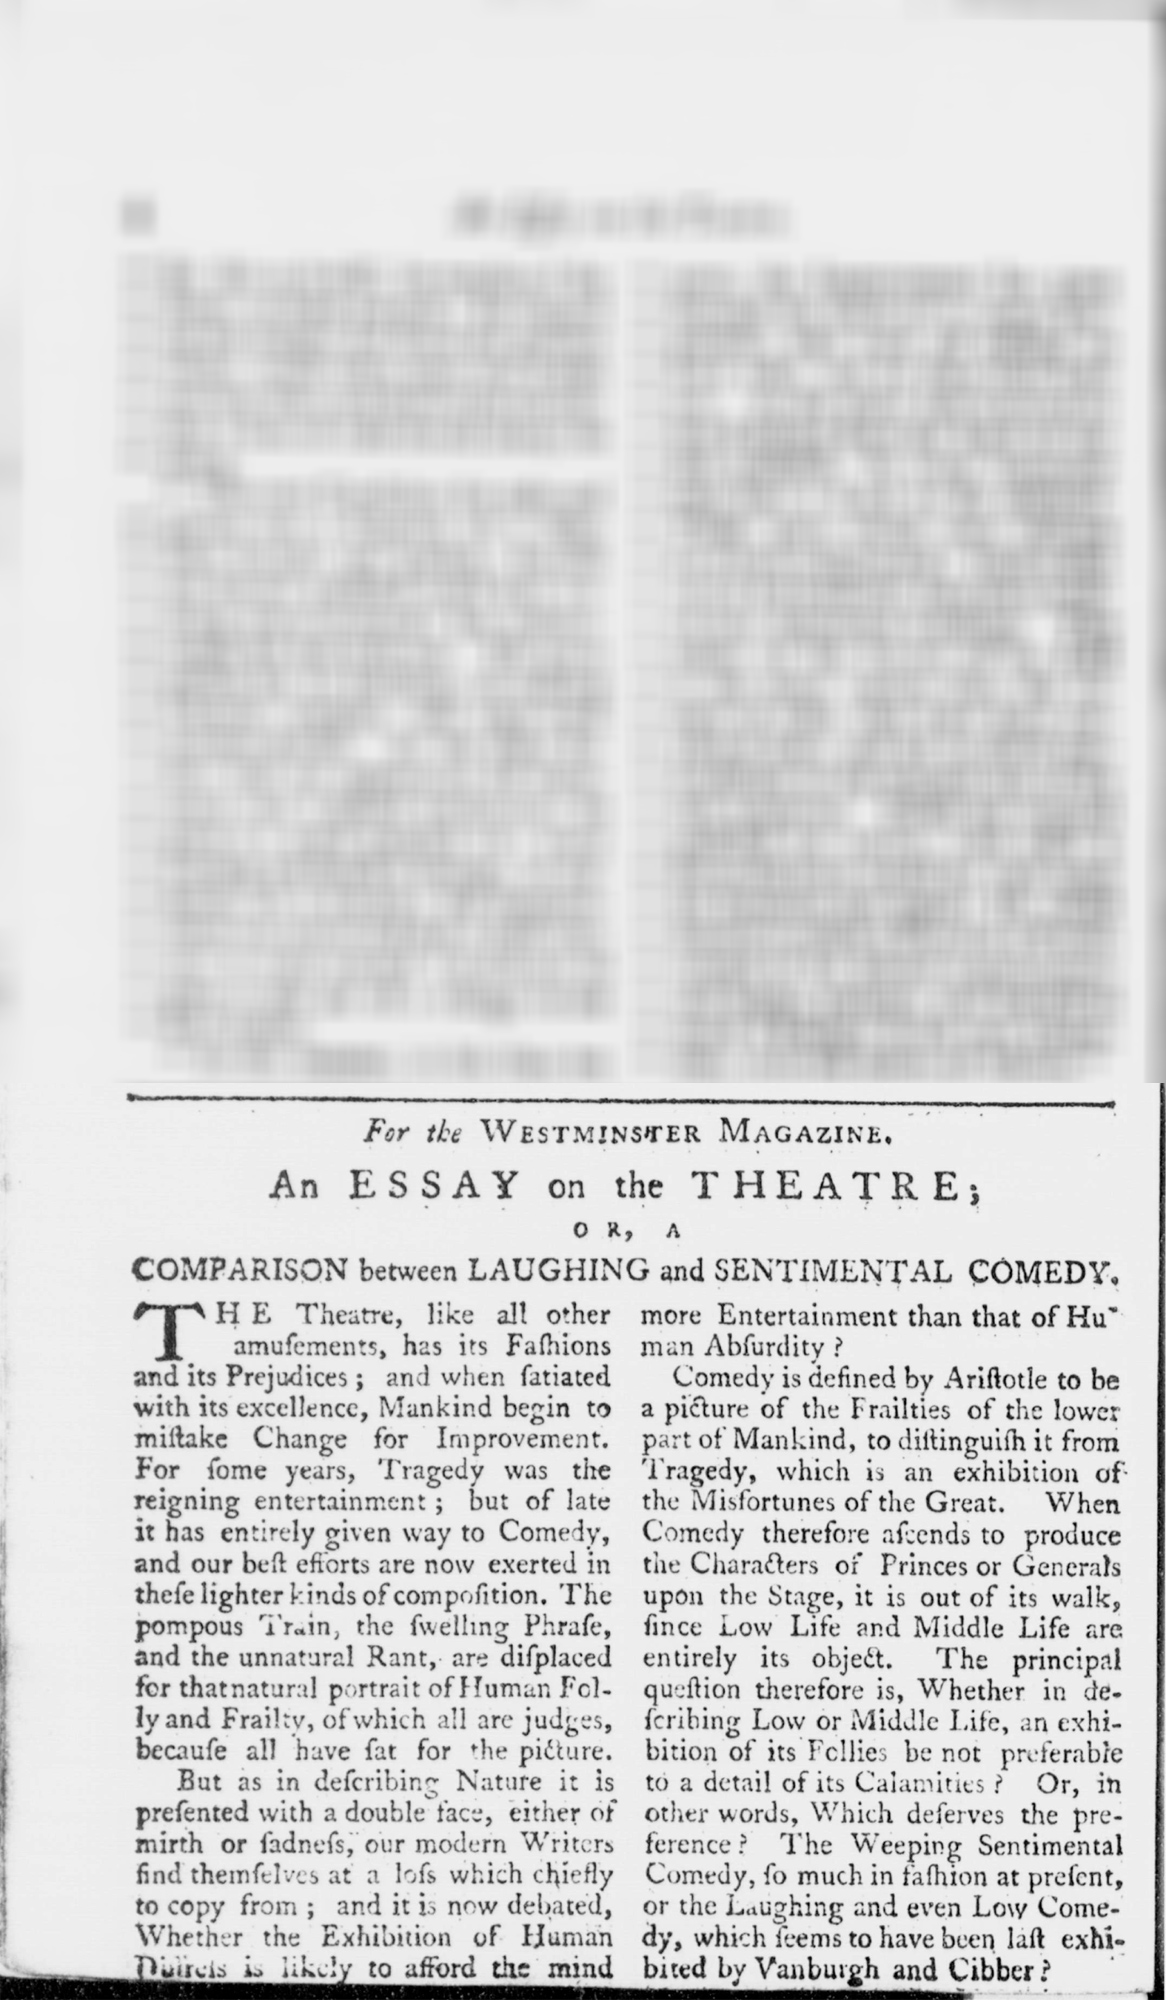 Essay on Theatre; or, A Comparison Between Laughing and Sentimental Comedy'